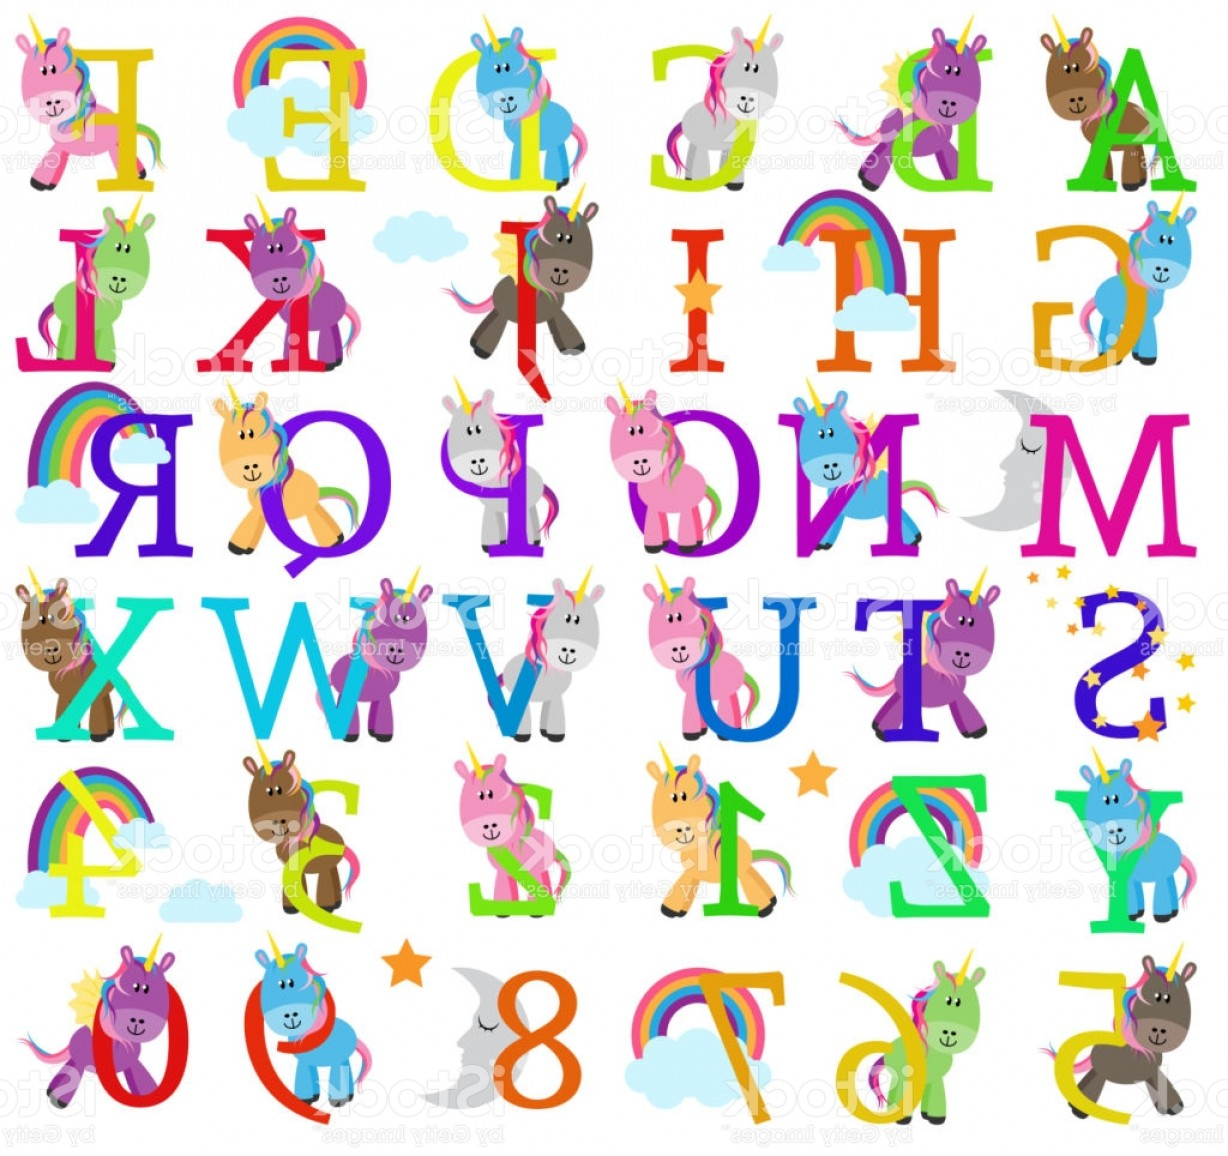 Alphabet Letters Vector Art: Vector Collection Of Cute Unicorn Themed Alphabet Letters Gm